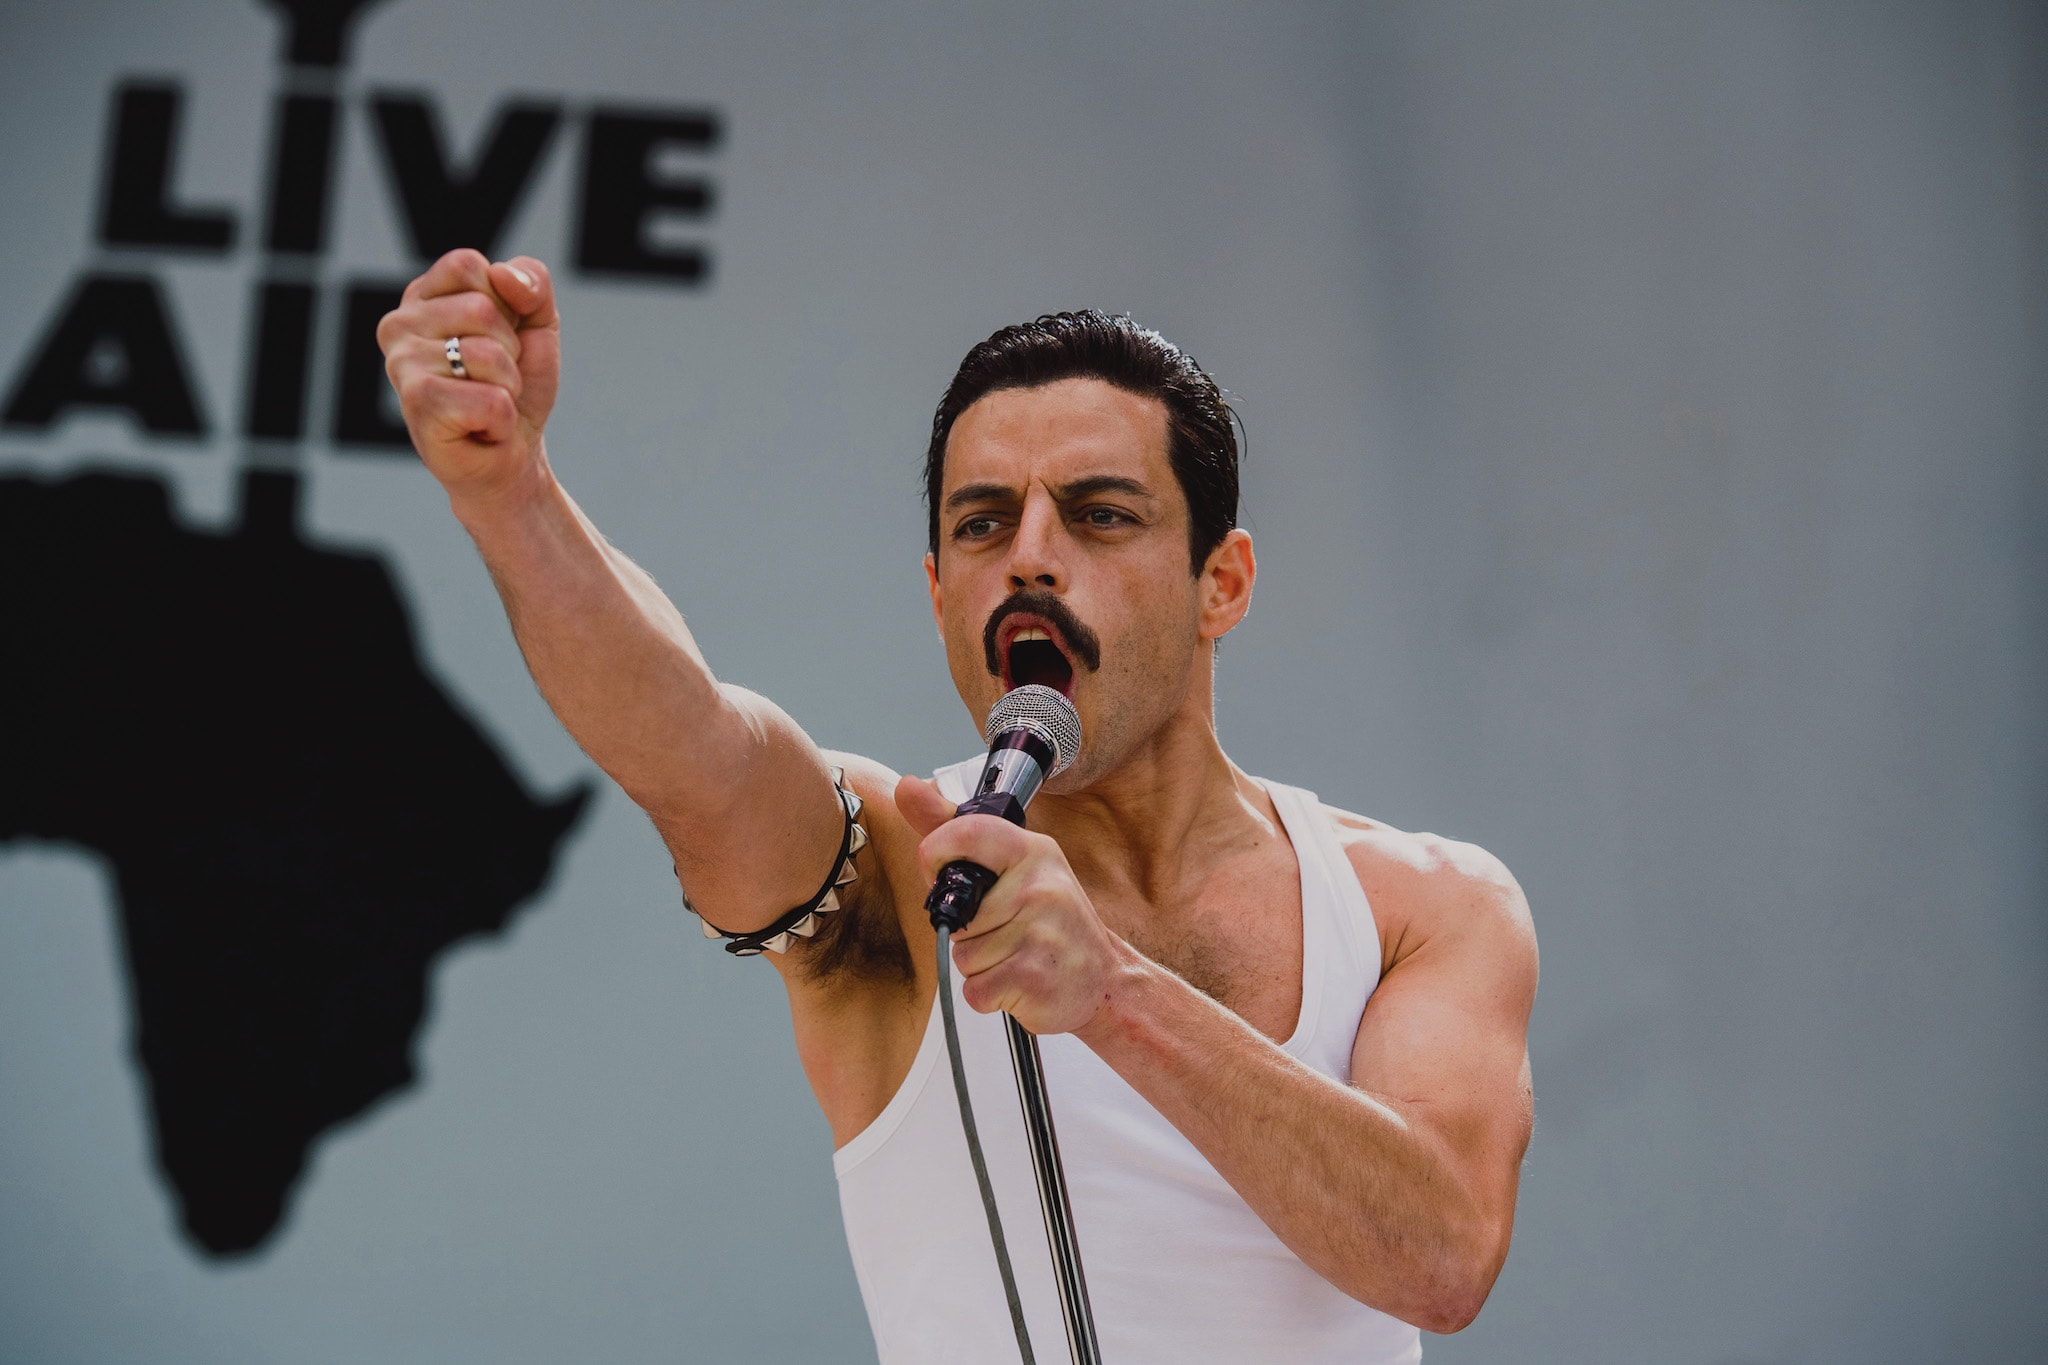 Rami Malek stars as Freddie Mercury in Twentieth Century Fox's BOHEMIAN RHAPSODY.